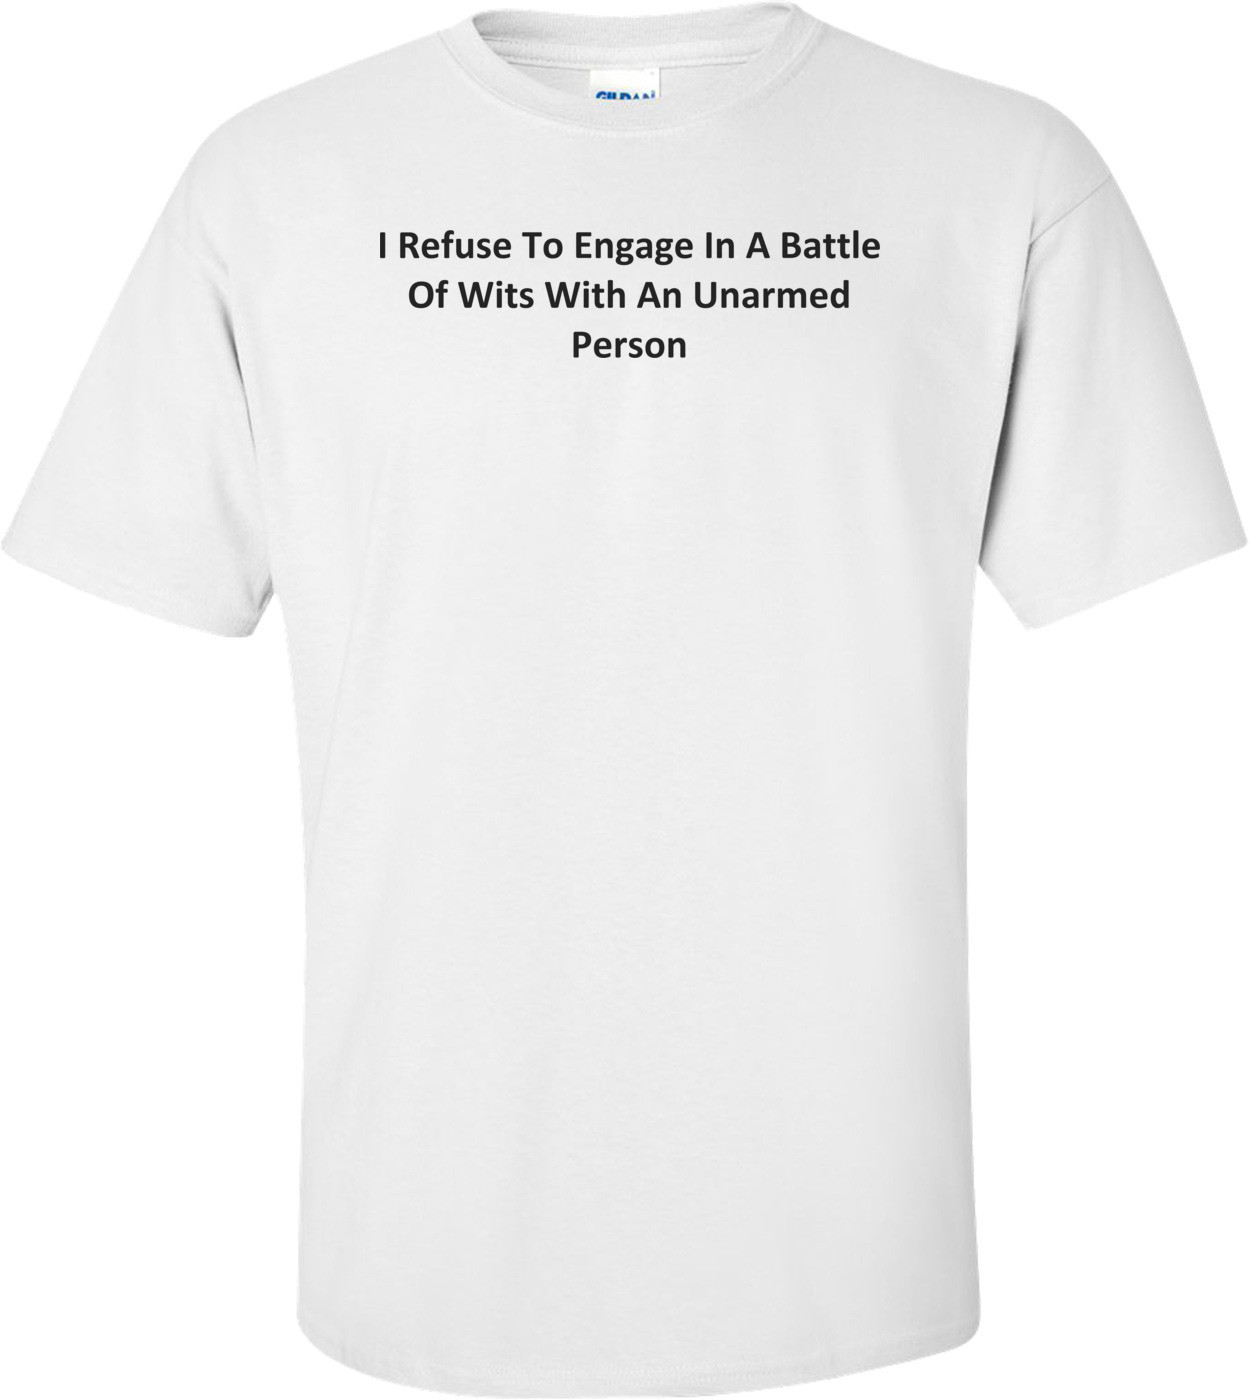 I Refuse To Engage In A Battle Of Wits With An Unarmed Person T-Shirt